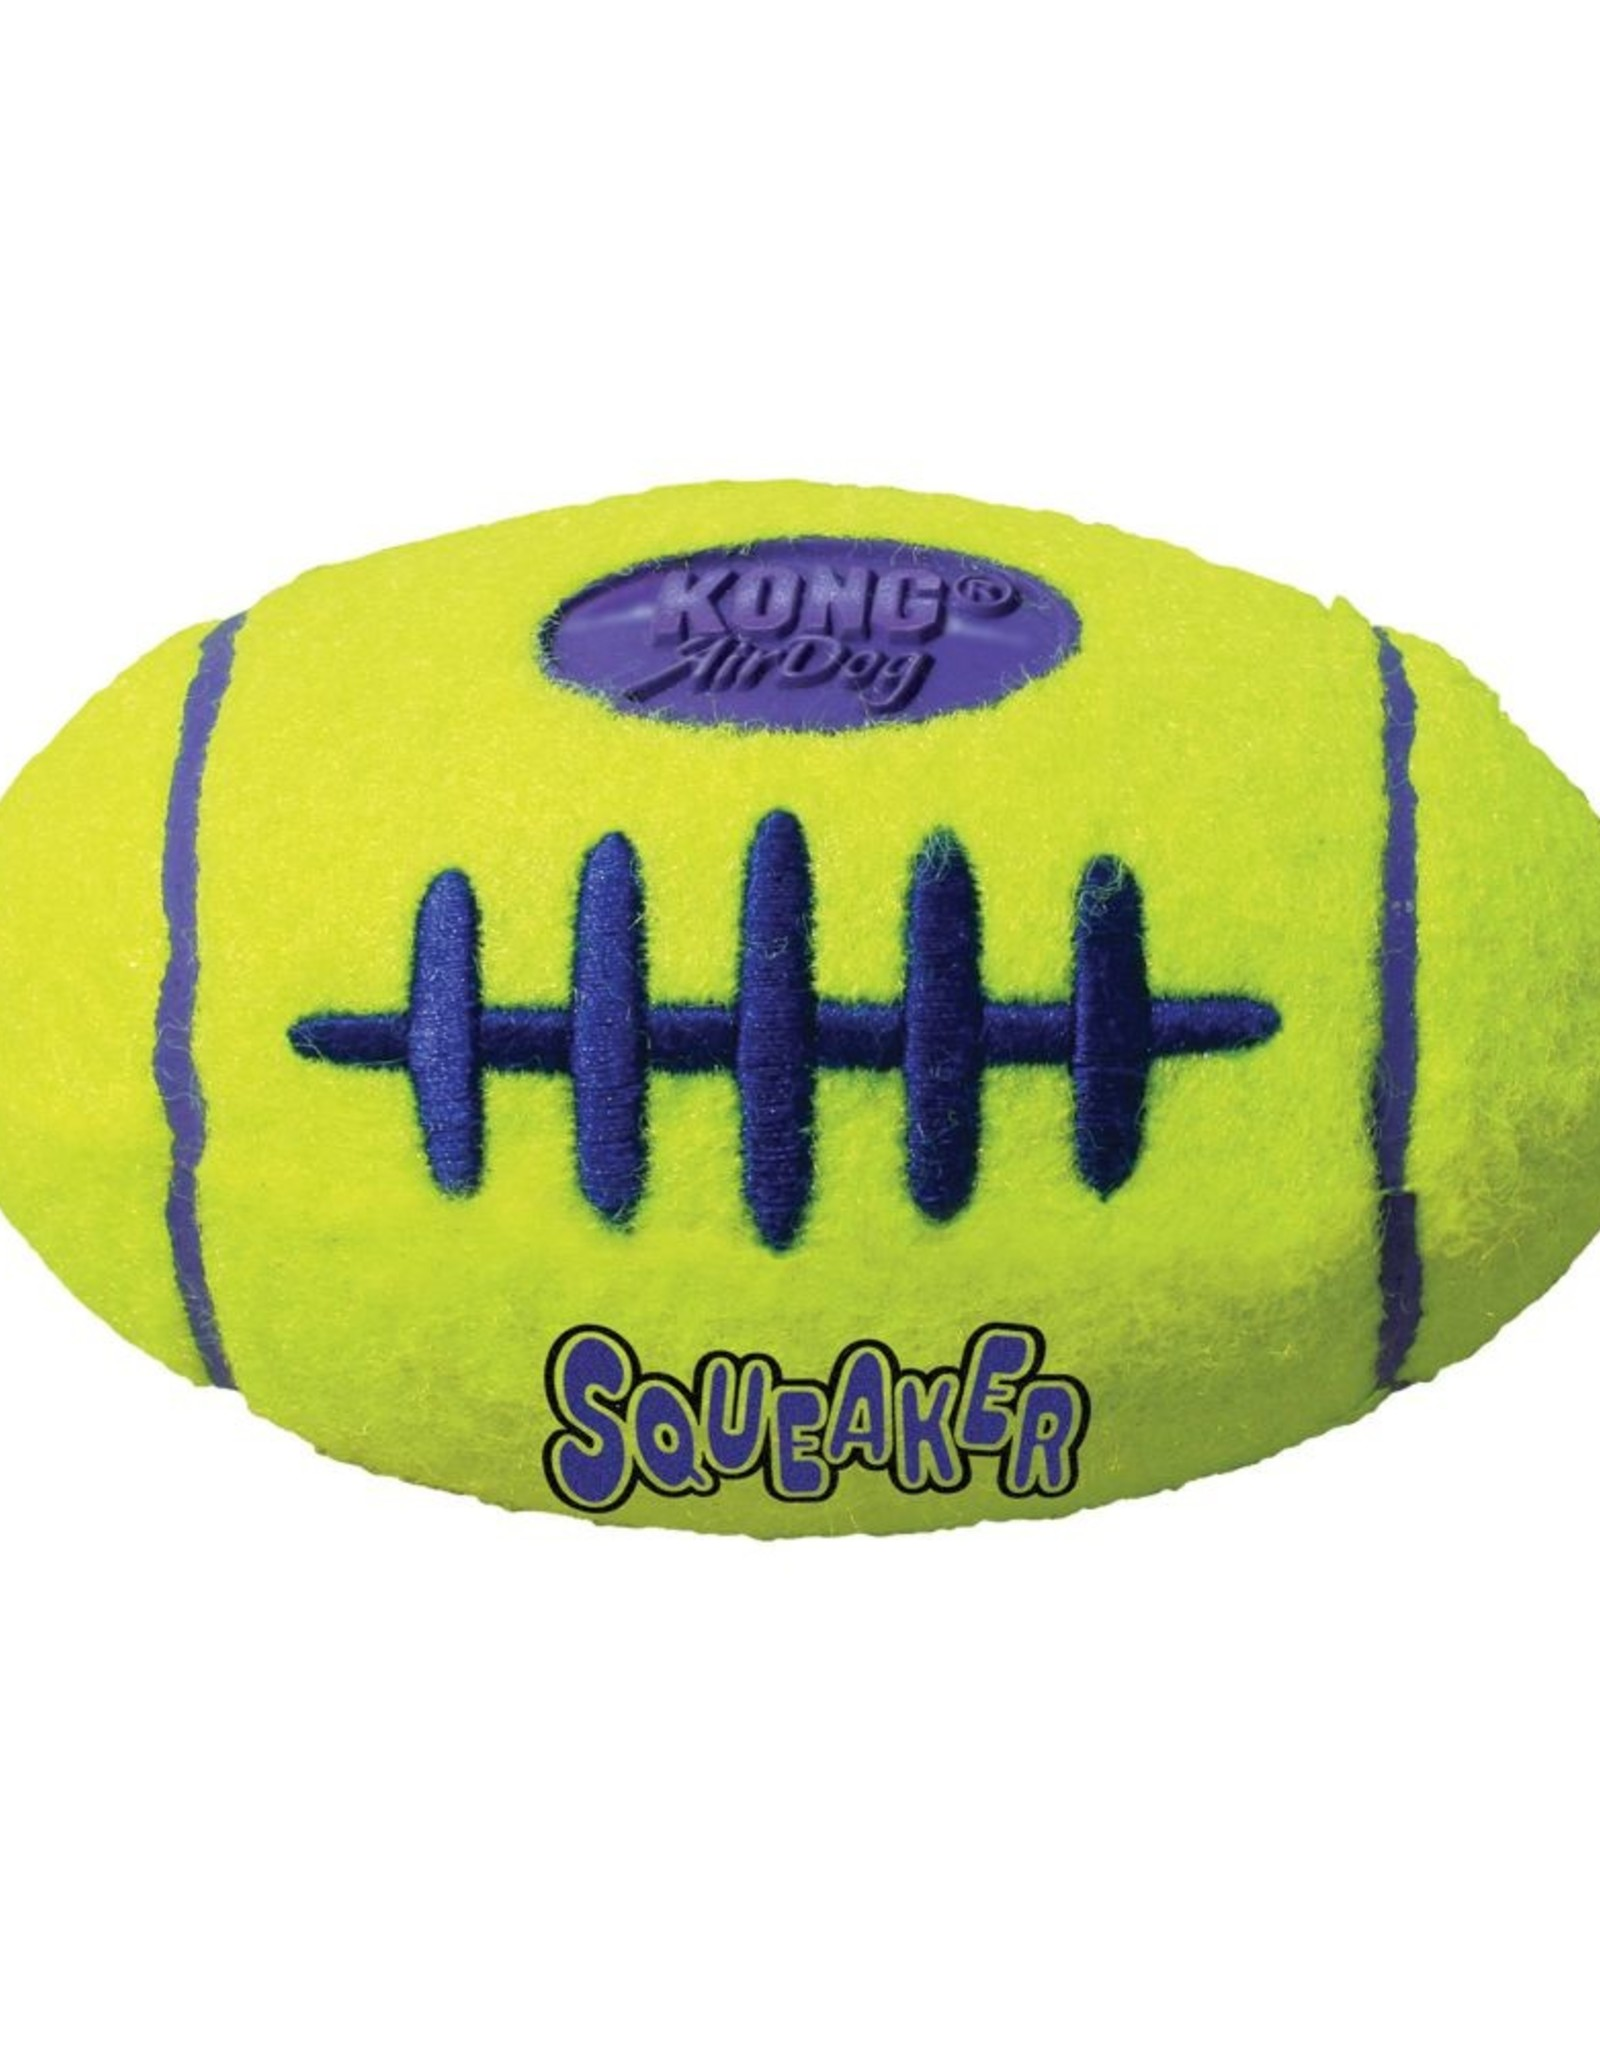 Airdog Squeaker Football - Small